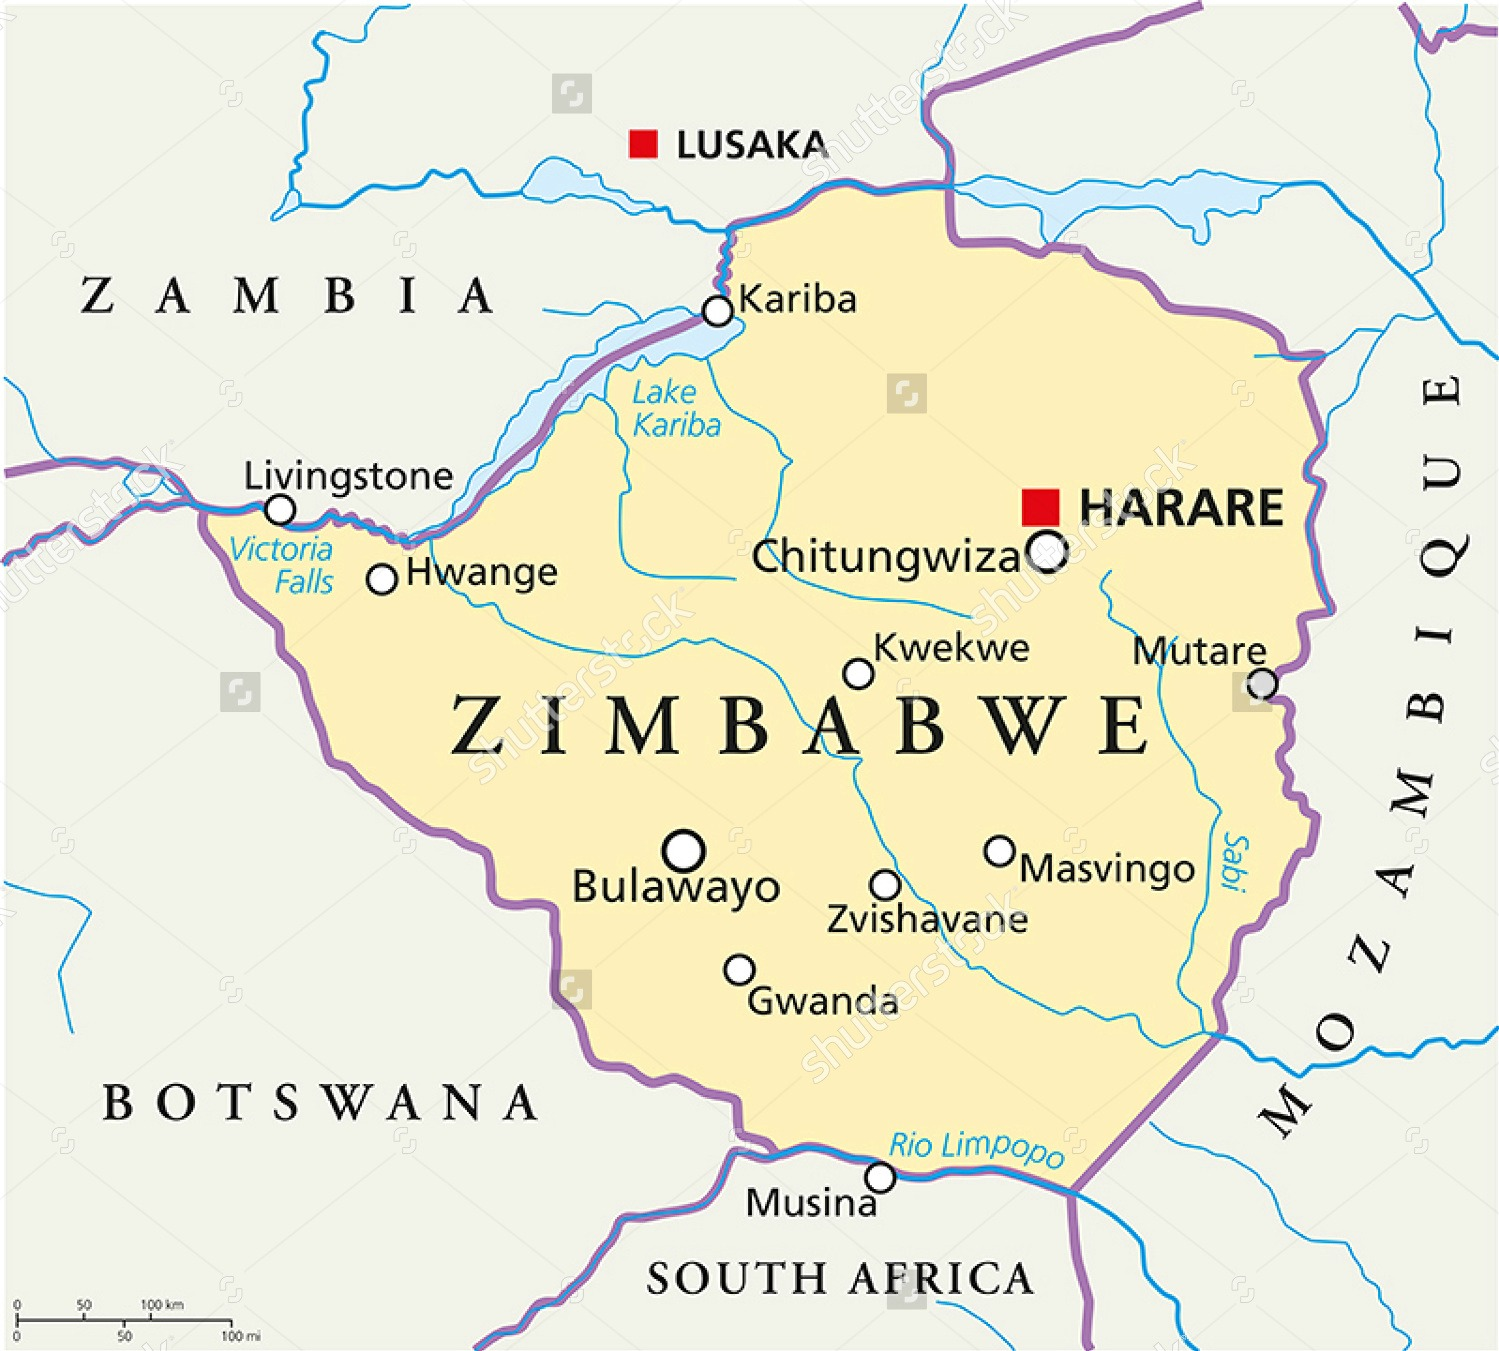 stock-vector-zimbabwe-political-map-with-capital-harare-with-national-borders-most-important-cities-rivers-211176790